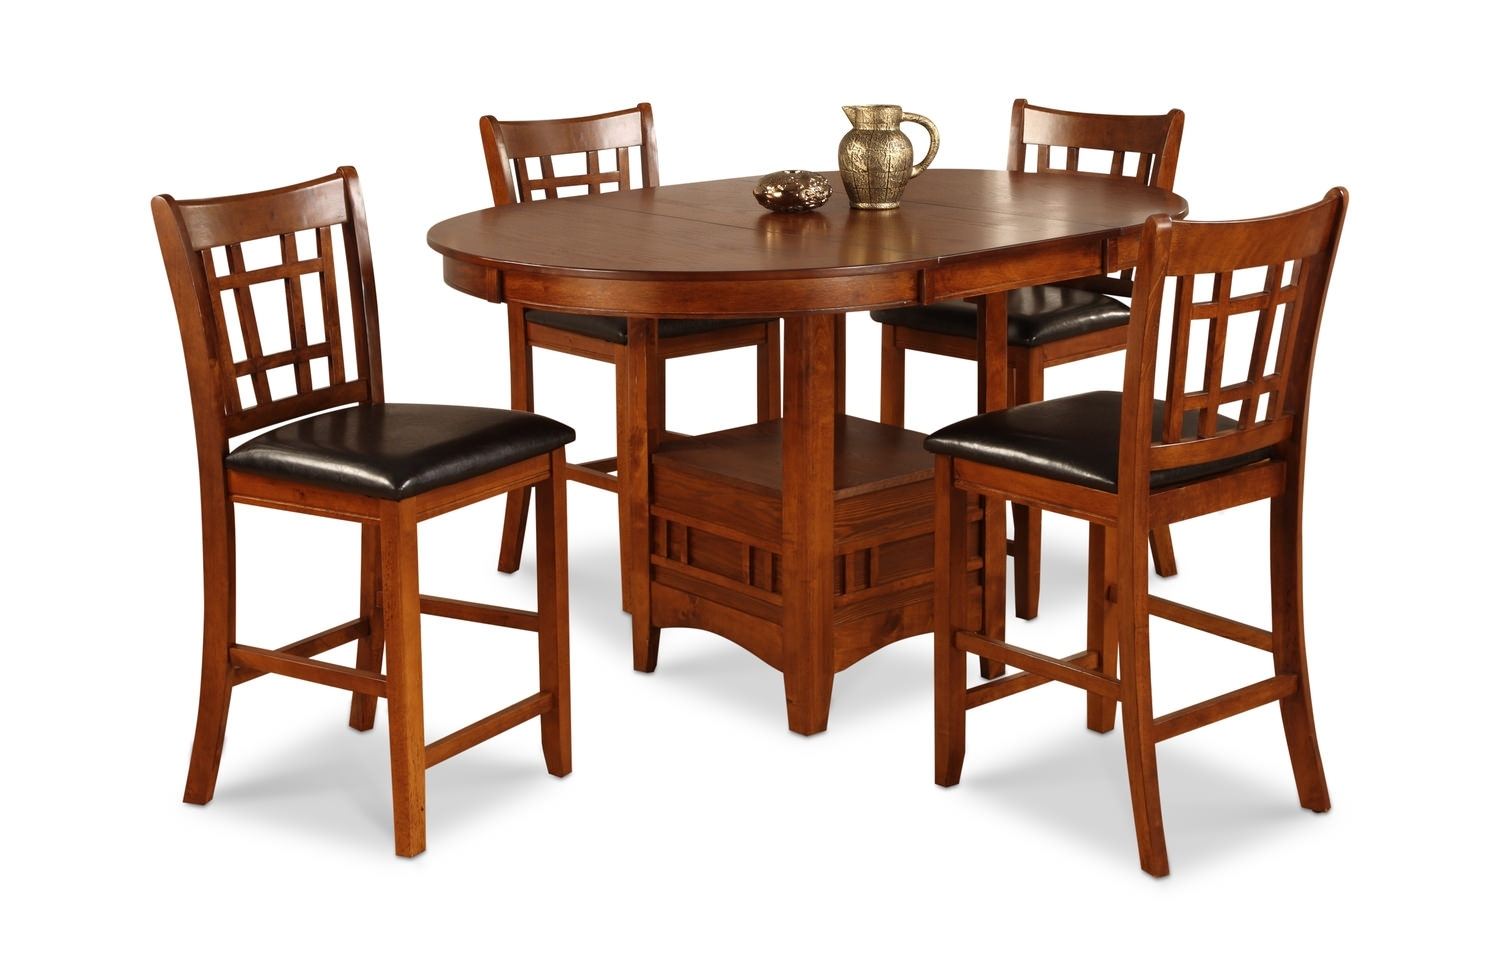 Dining Sets – Kitchen & Dining Room Sets – Hom Furniture In Current Chapleau Ii 7 Piece Extension Dining Table Sets (Image 11 of 20)